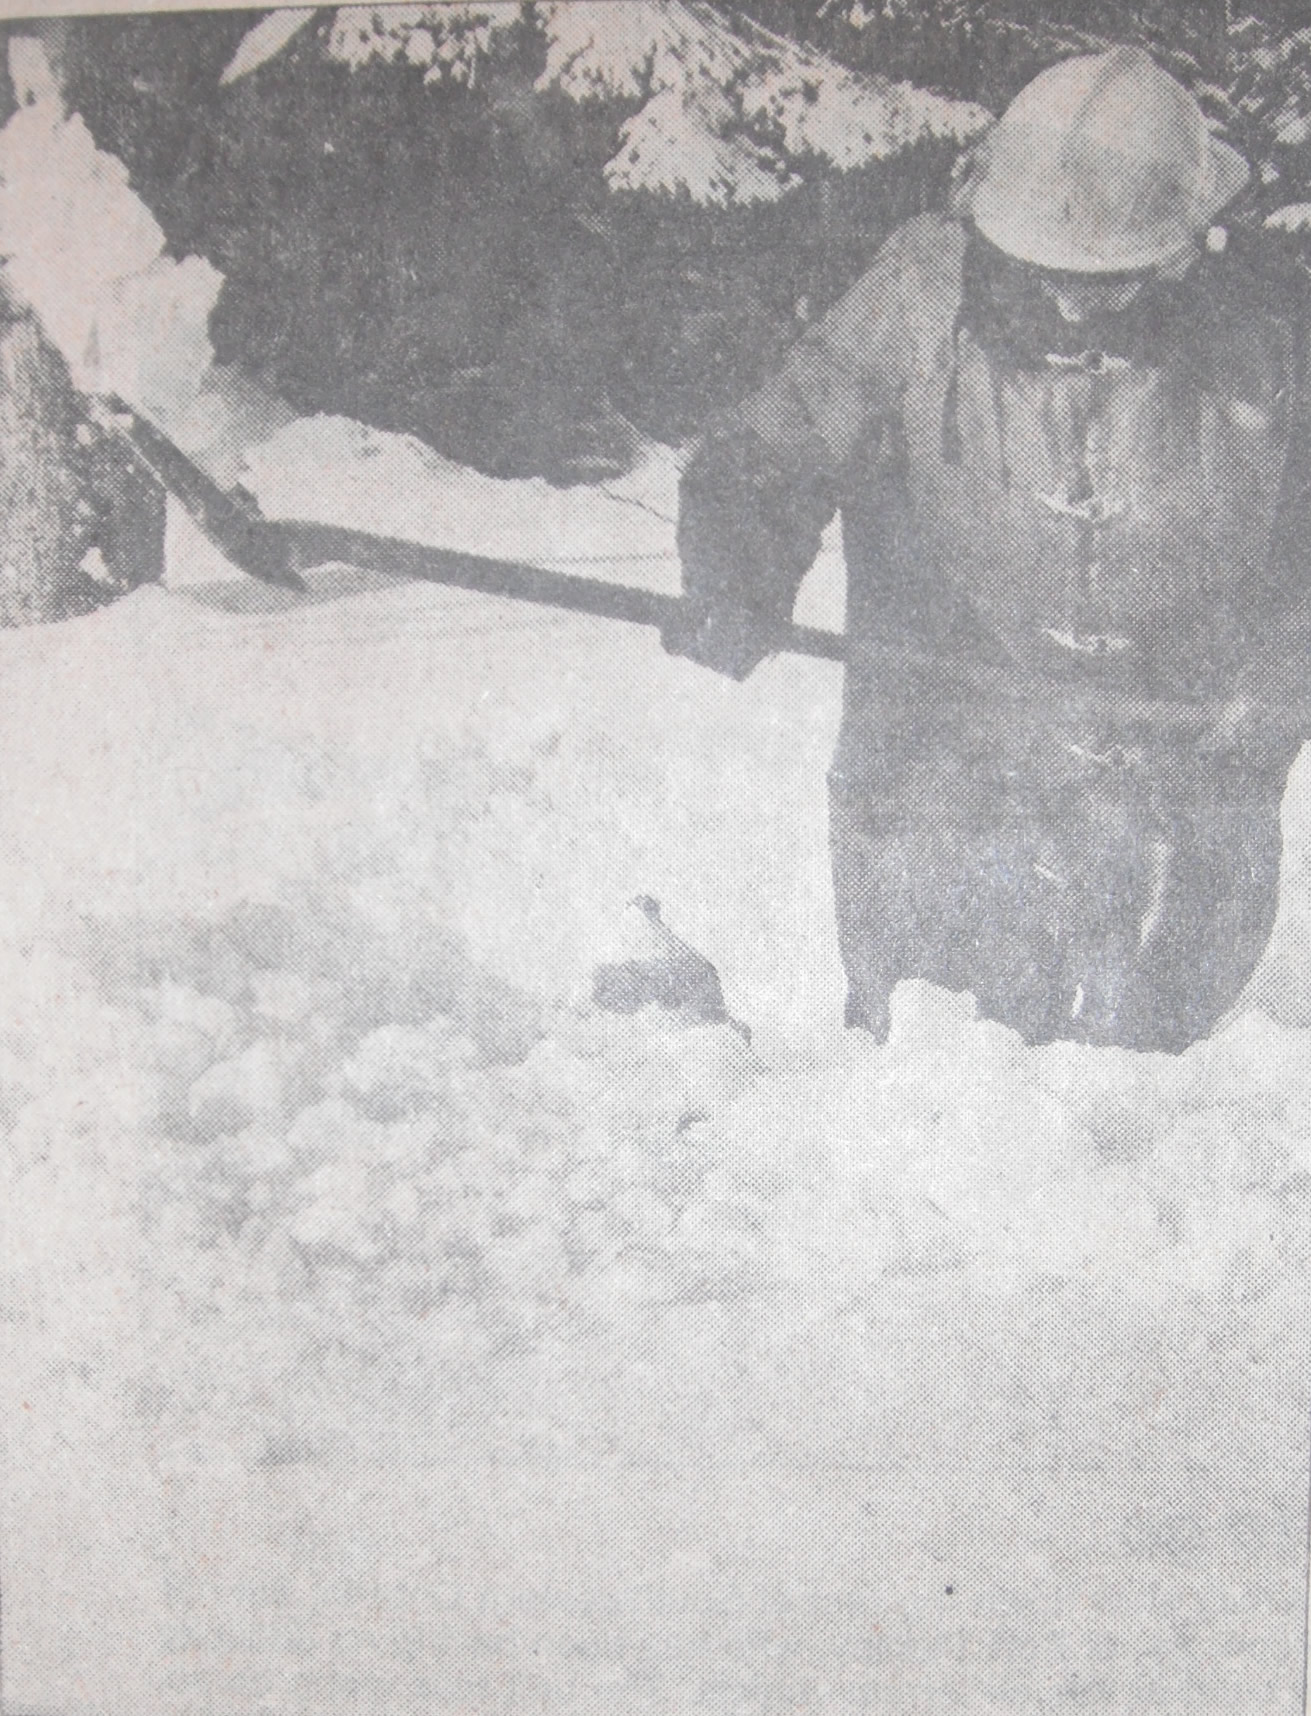 Firefighter Jim Myatt digging out the snow around a fire hydrant